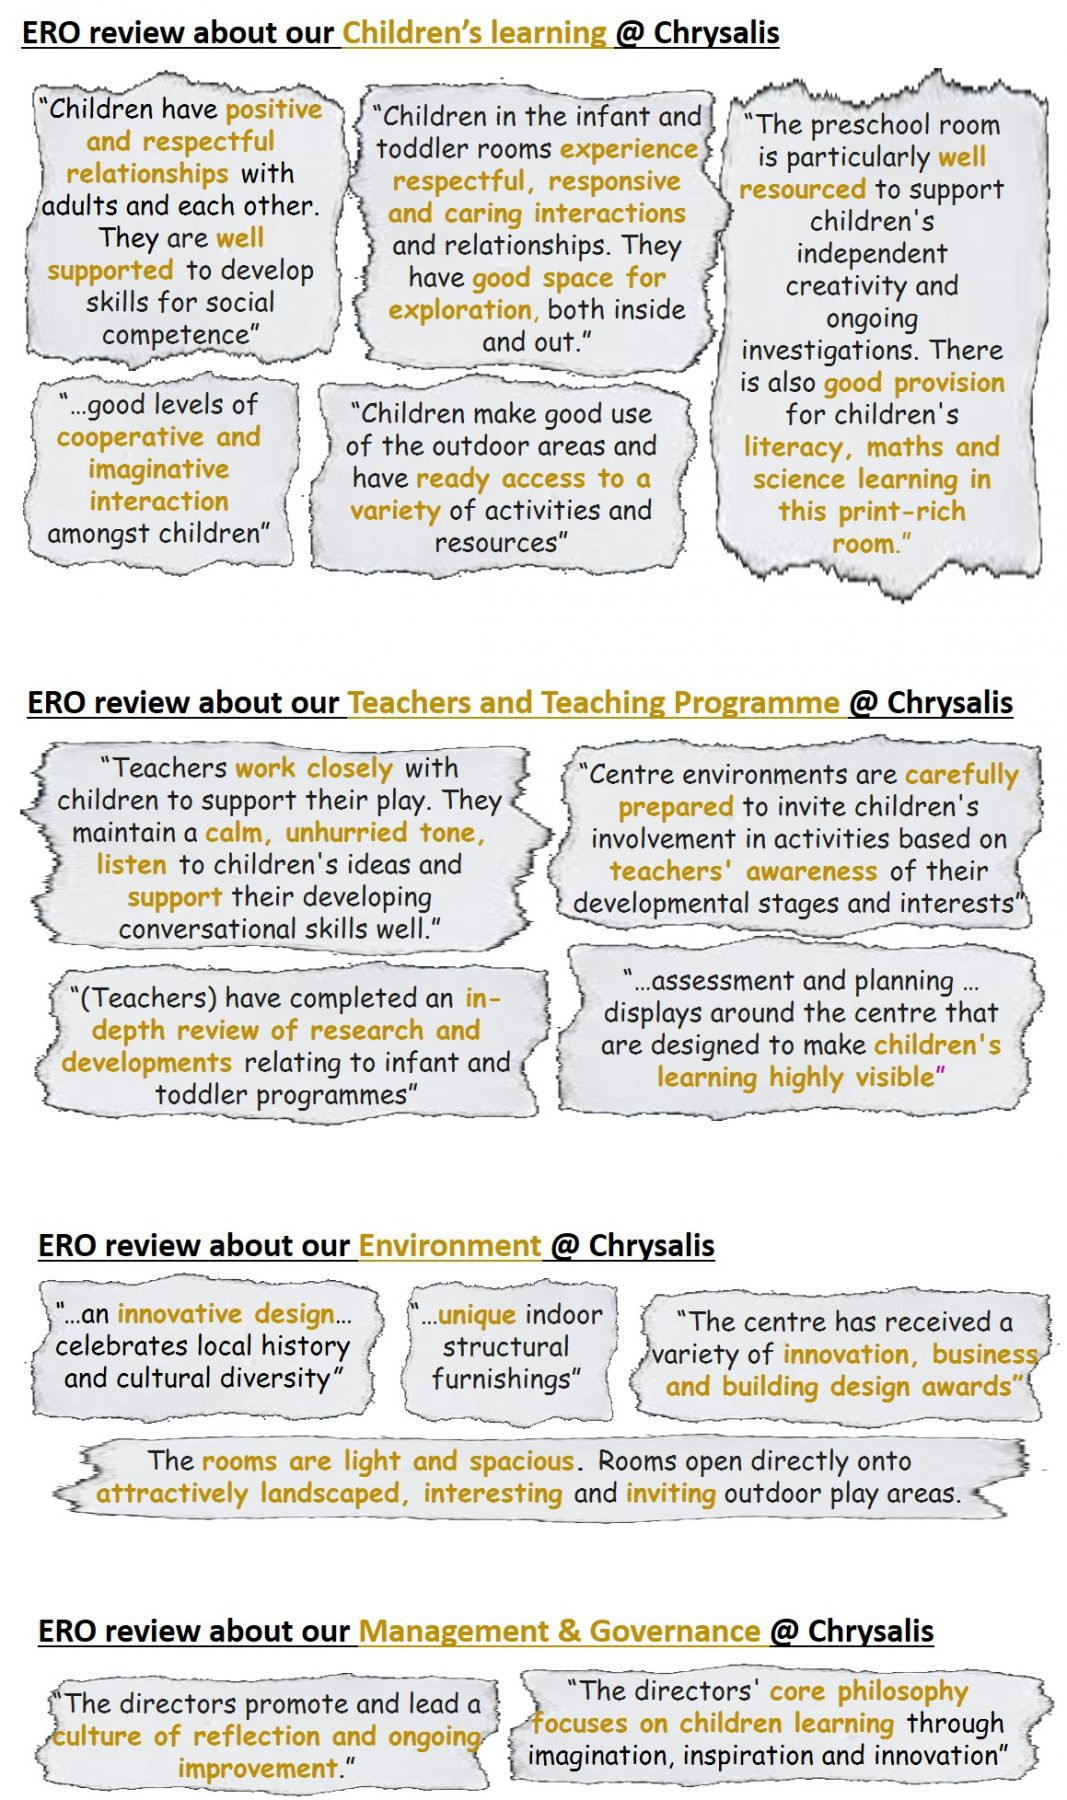 Ero reviews | Chrysalis Early Learning Centre | Day Care in